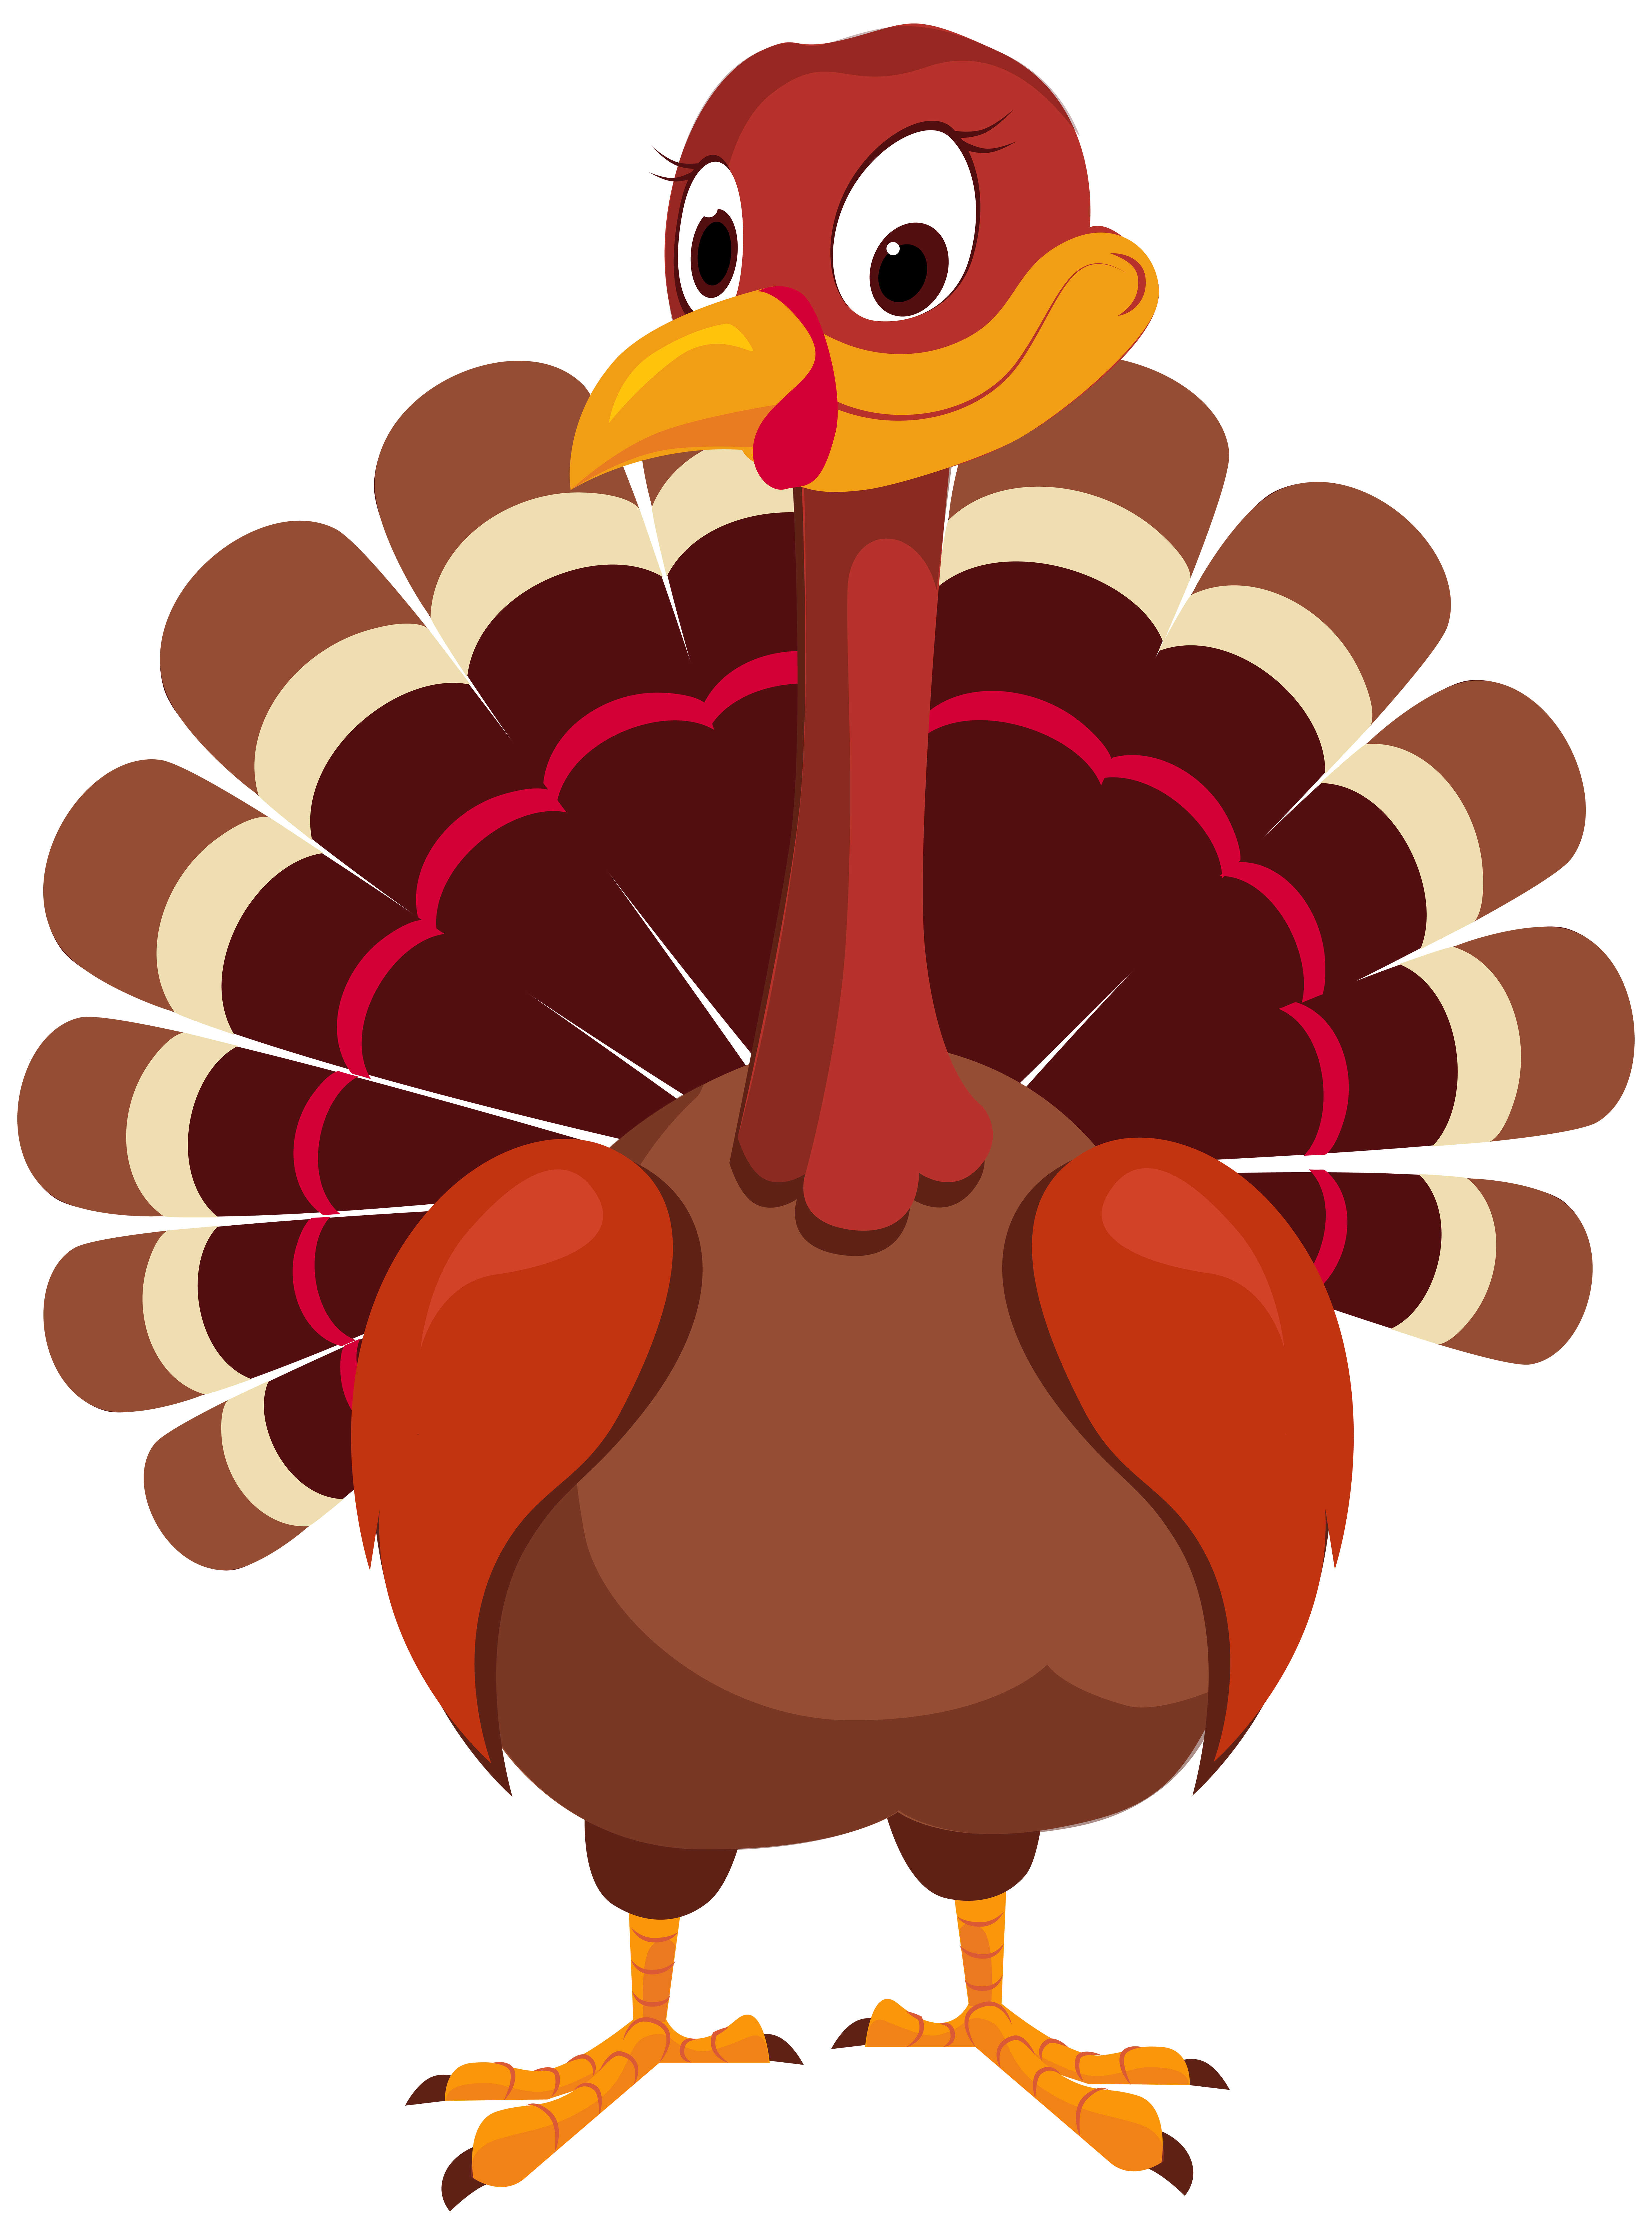 Todd Clipart 20 Fee Cliparts Download Imagenes: Turkey Clipart Png 20 Free Cliparts